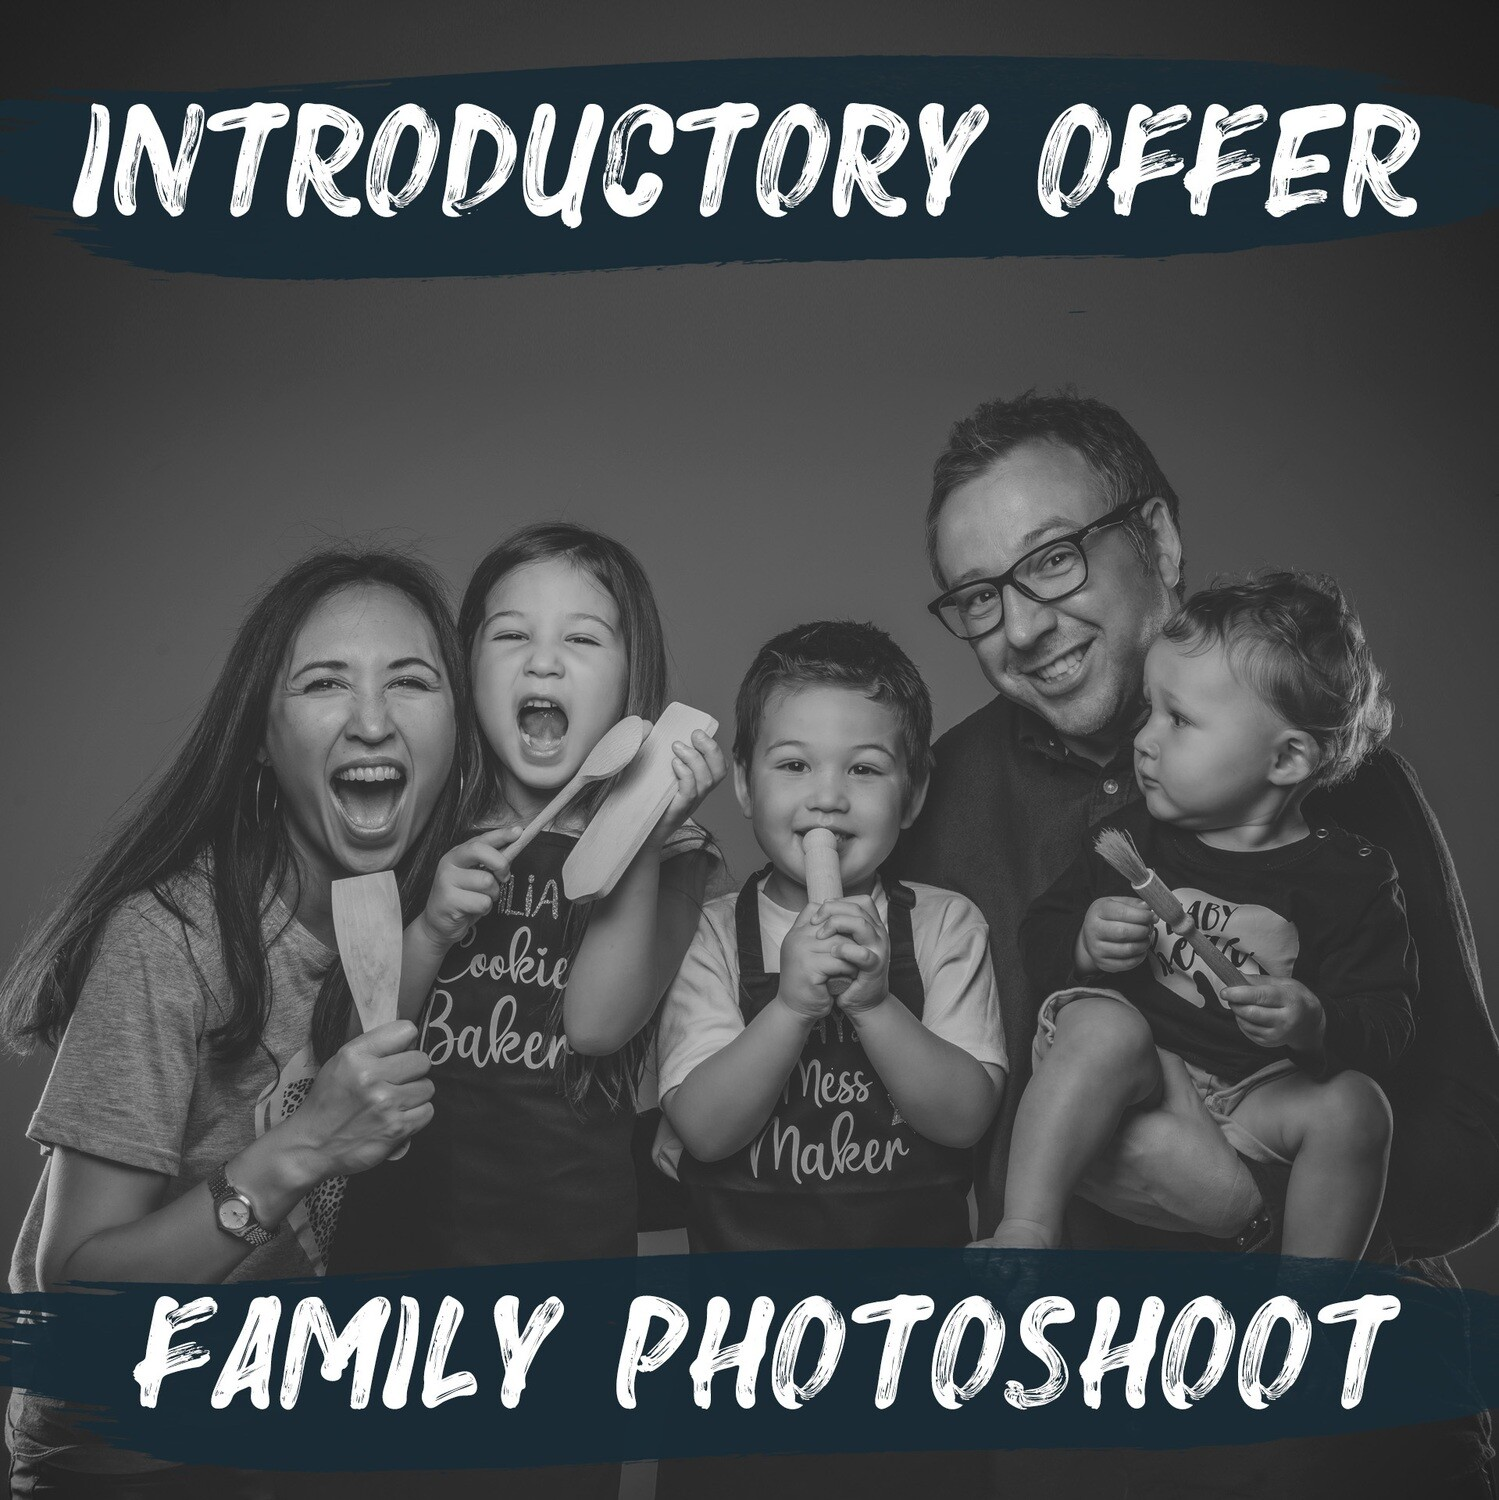 Family Photoshoot & £50 Gift Voucher